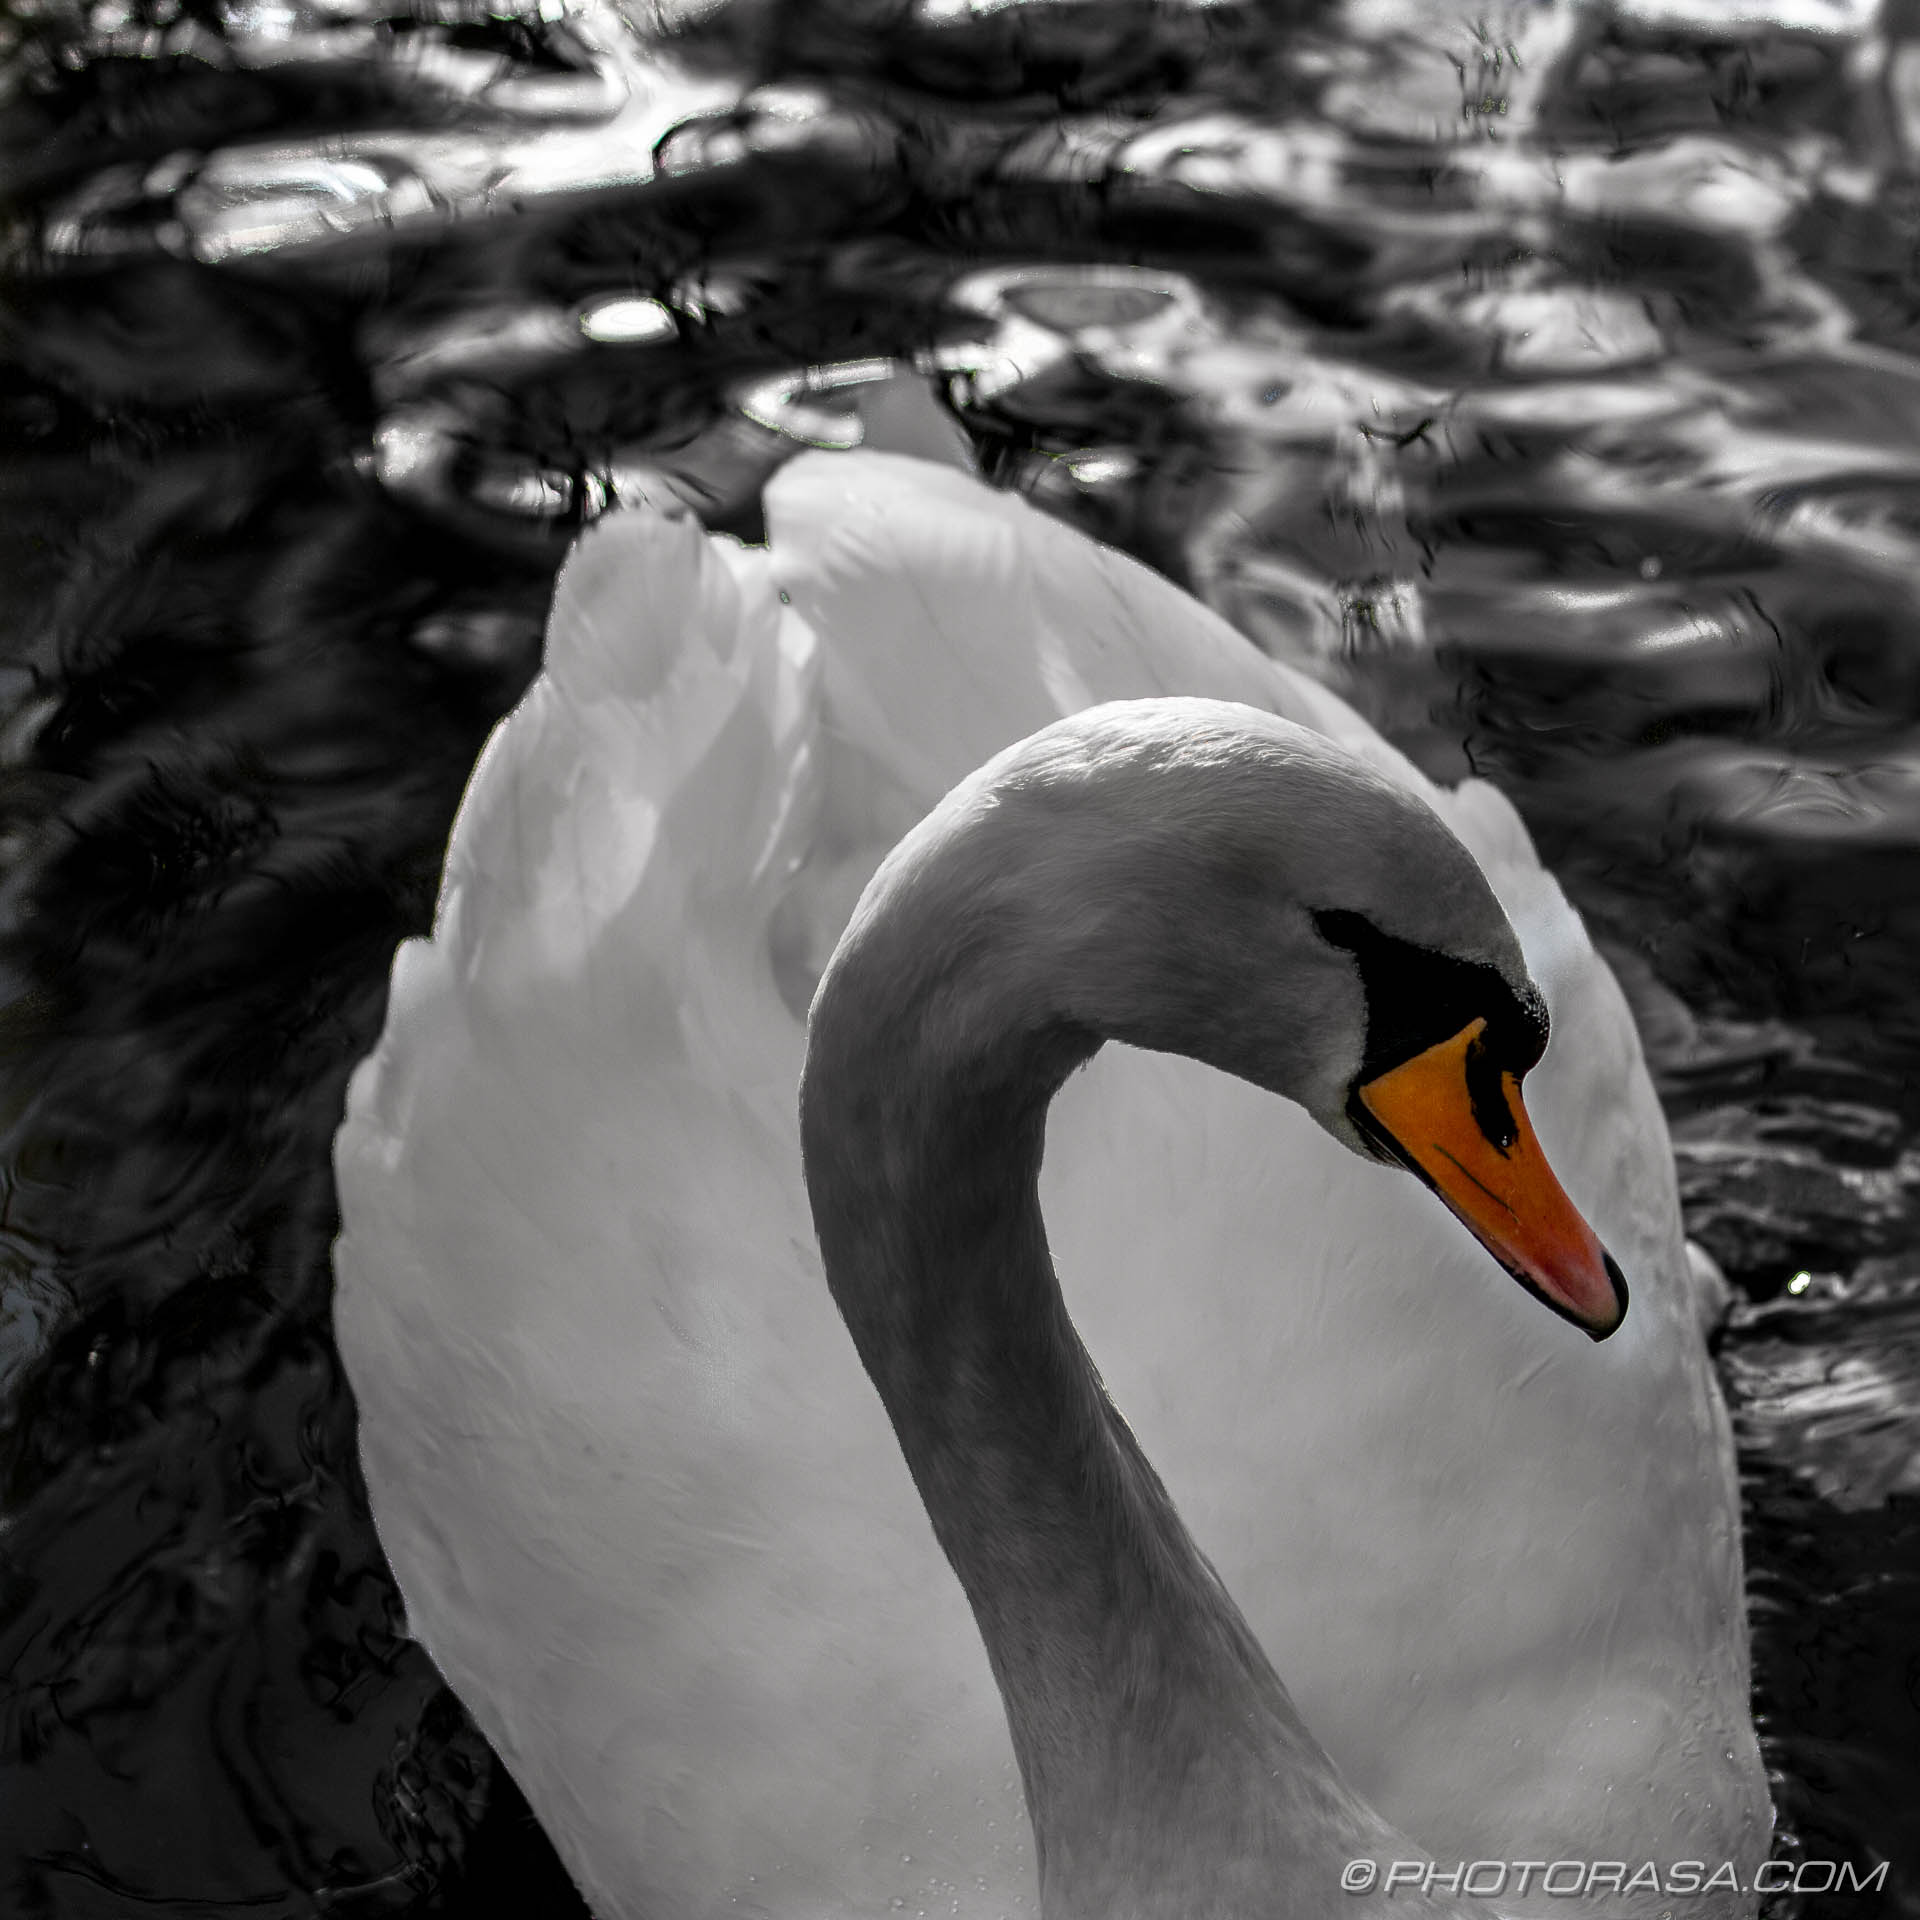 http://photorasa.com/art-swans/swan-gliding-forwards/